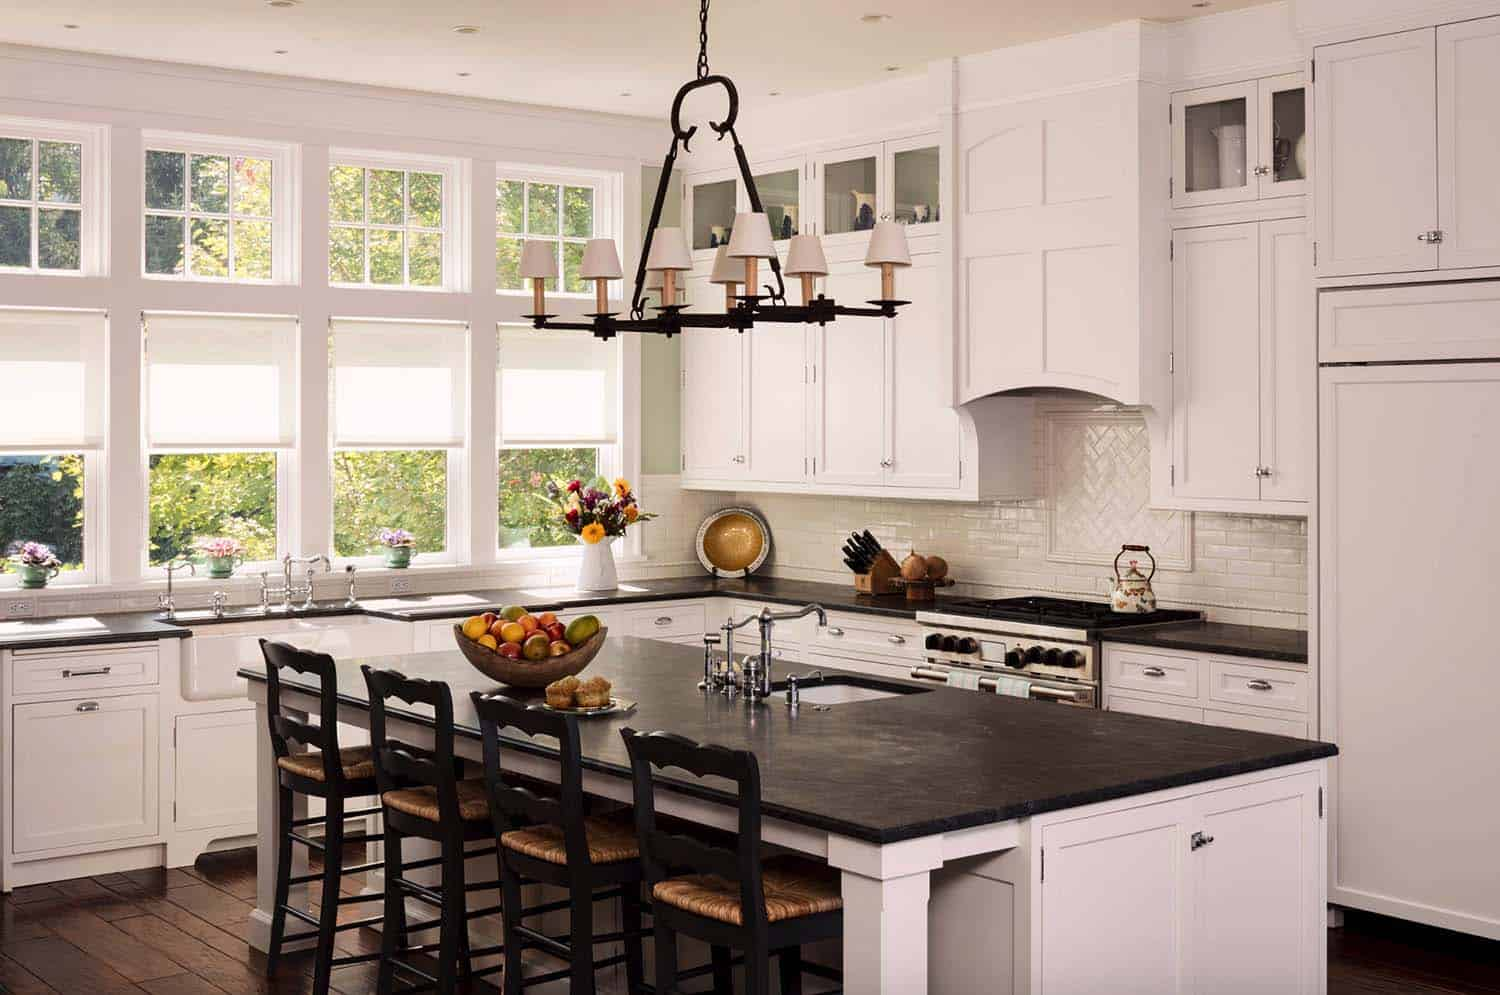 shingle-style-home-beach-style-kitchen